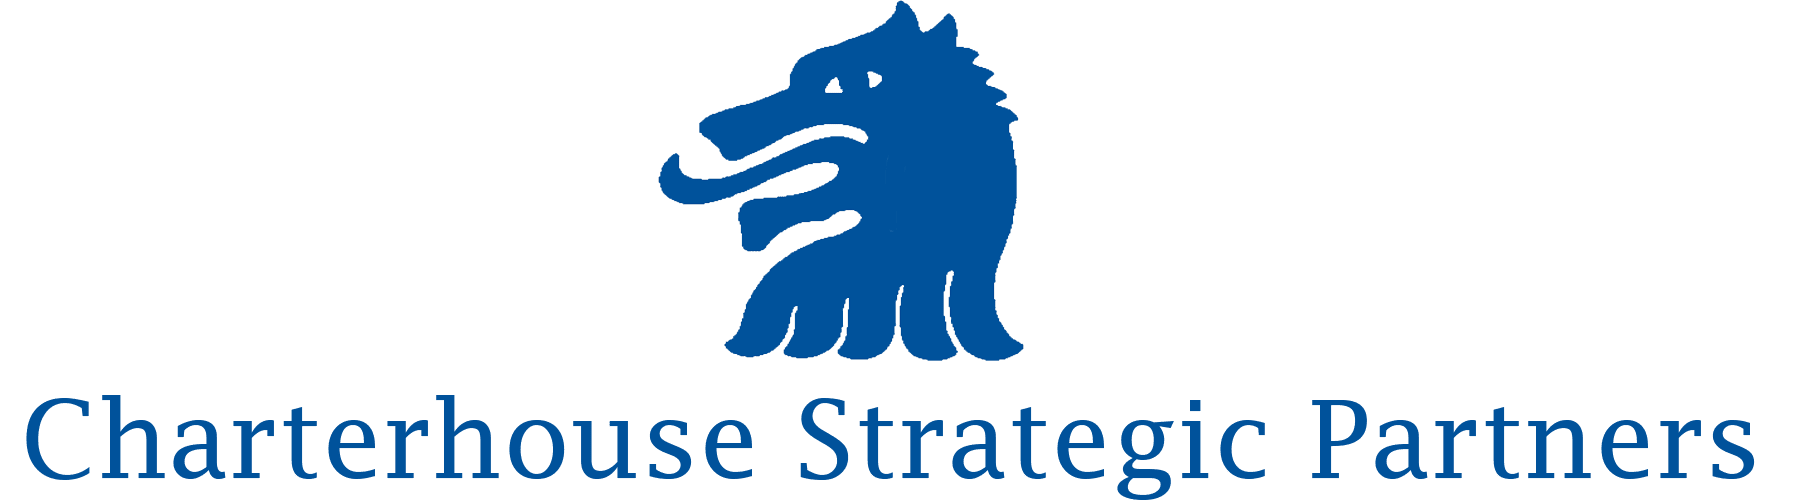 Charter House Strategic Partners